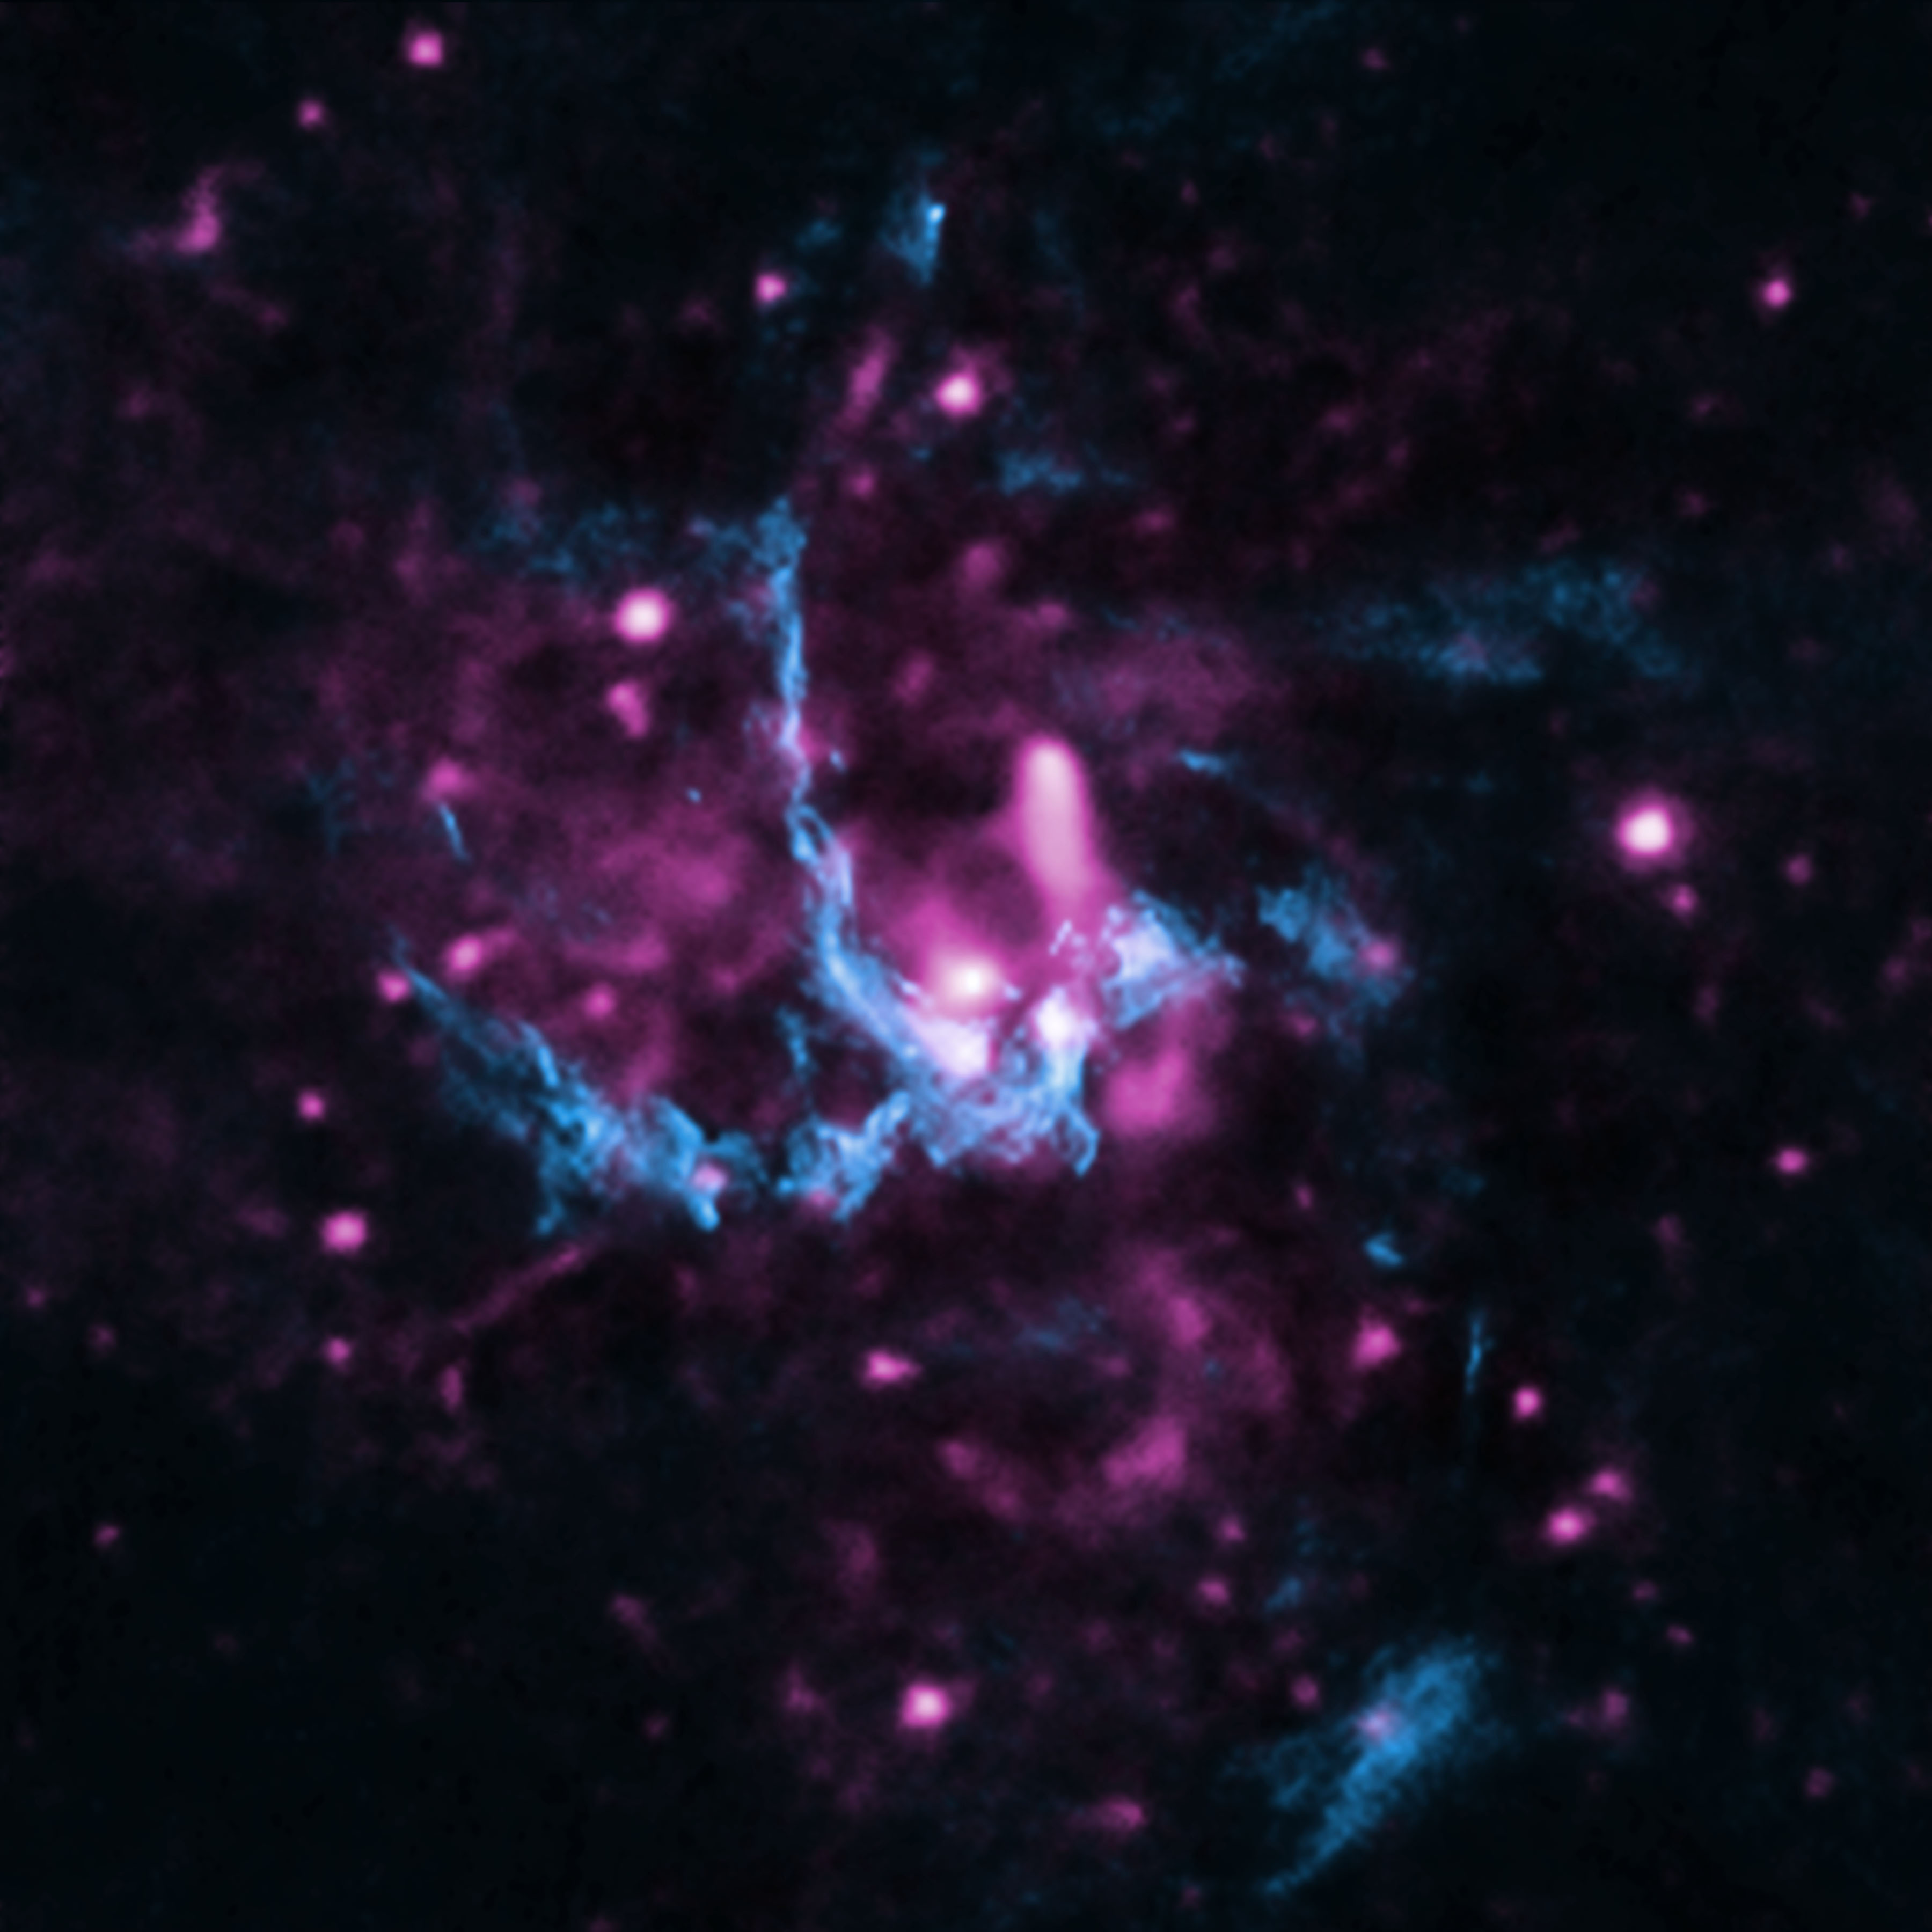 The supermassive black hole at the center of the Milky Way.